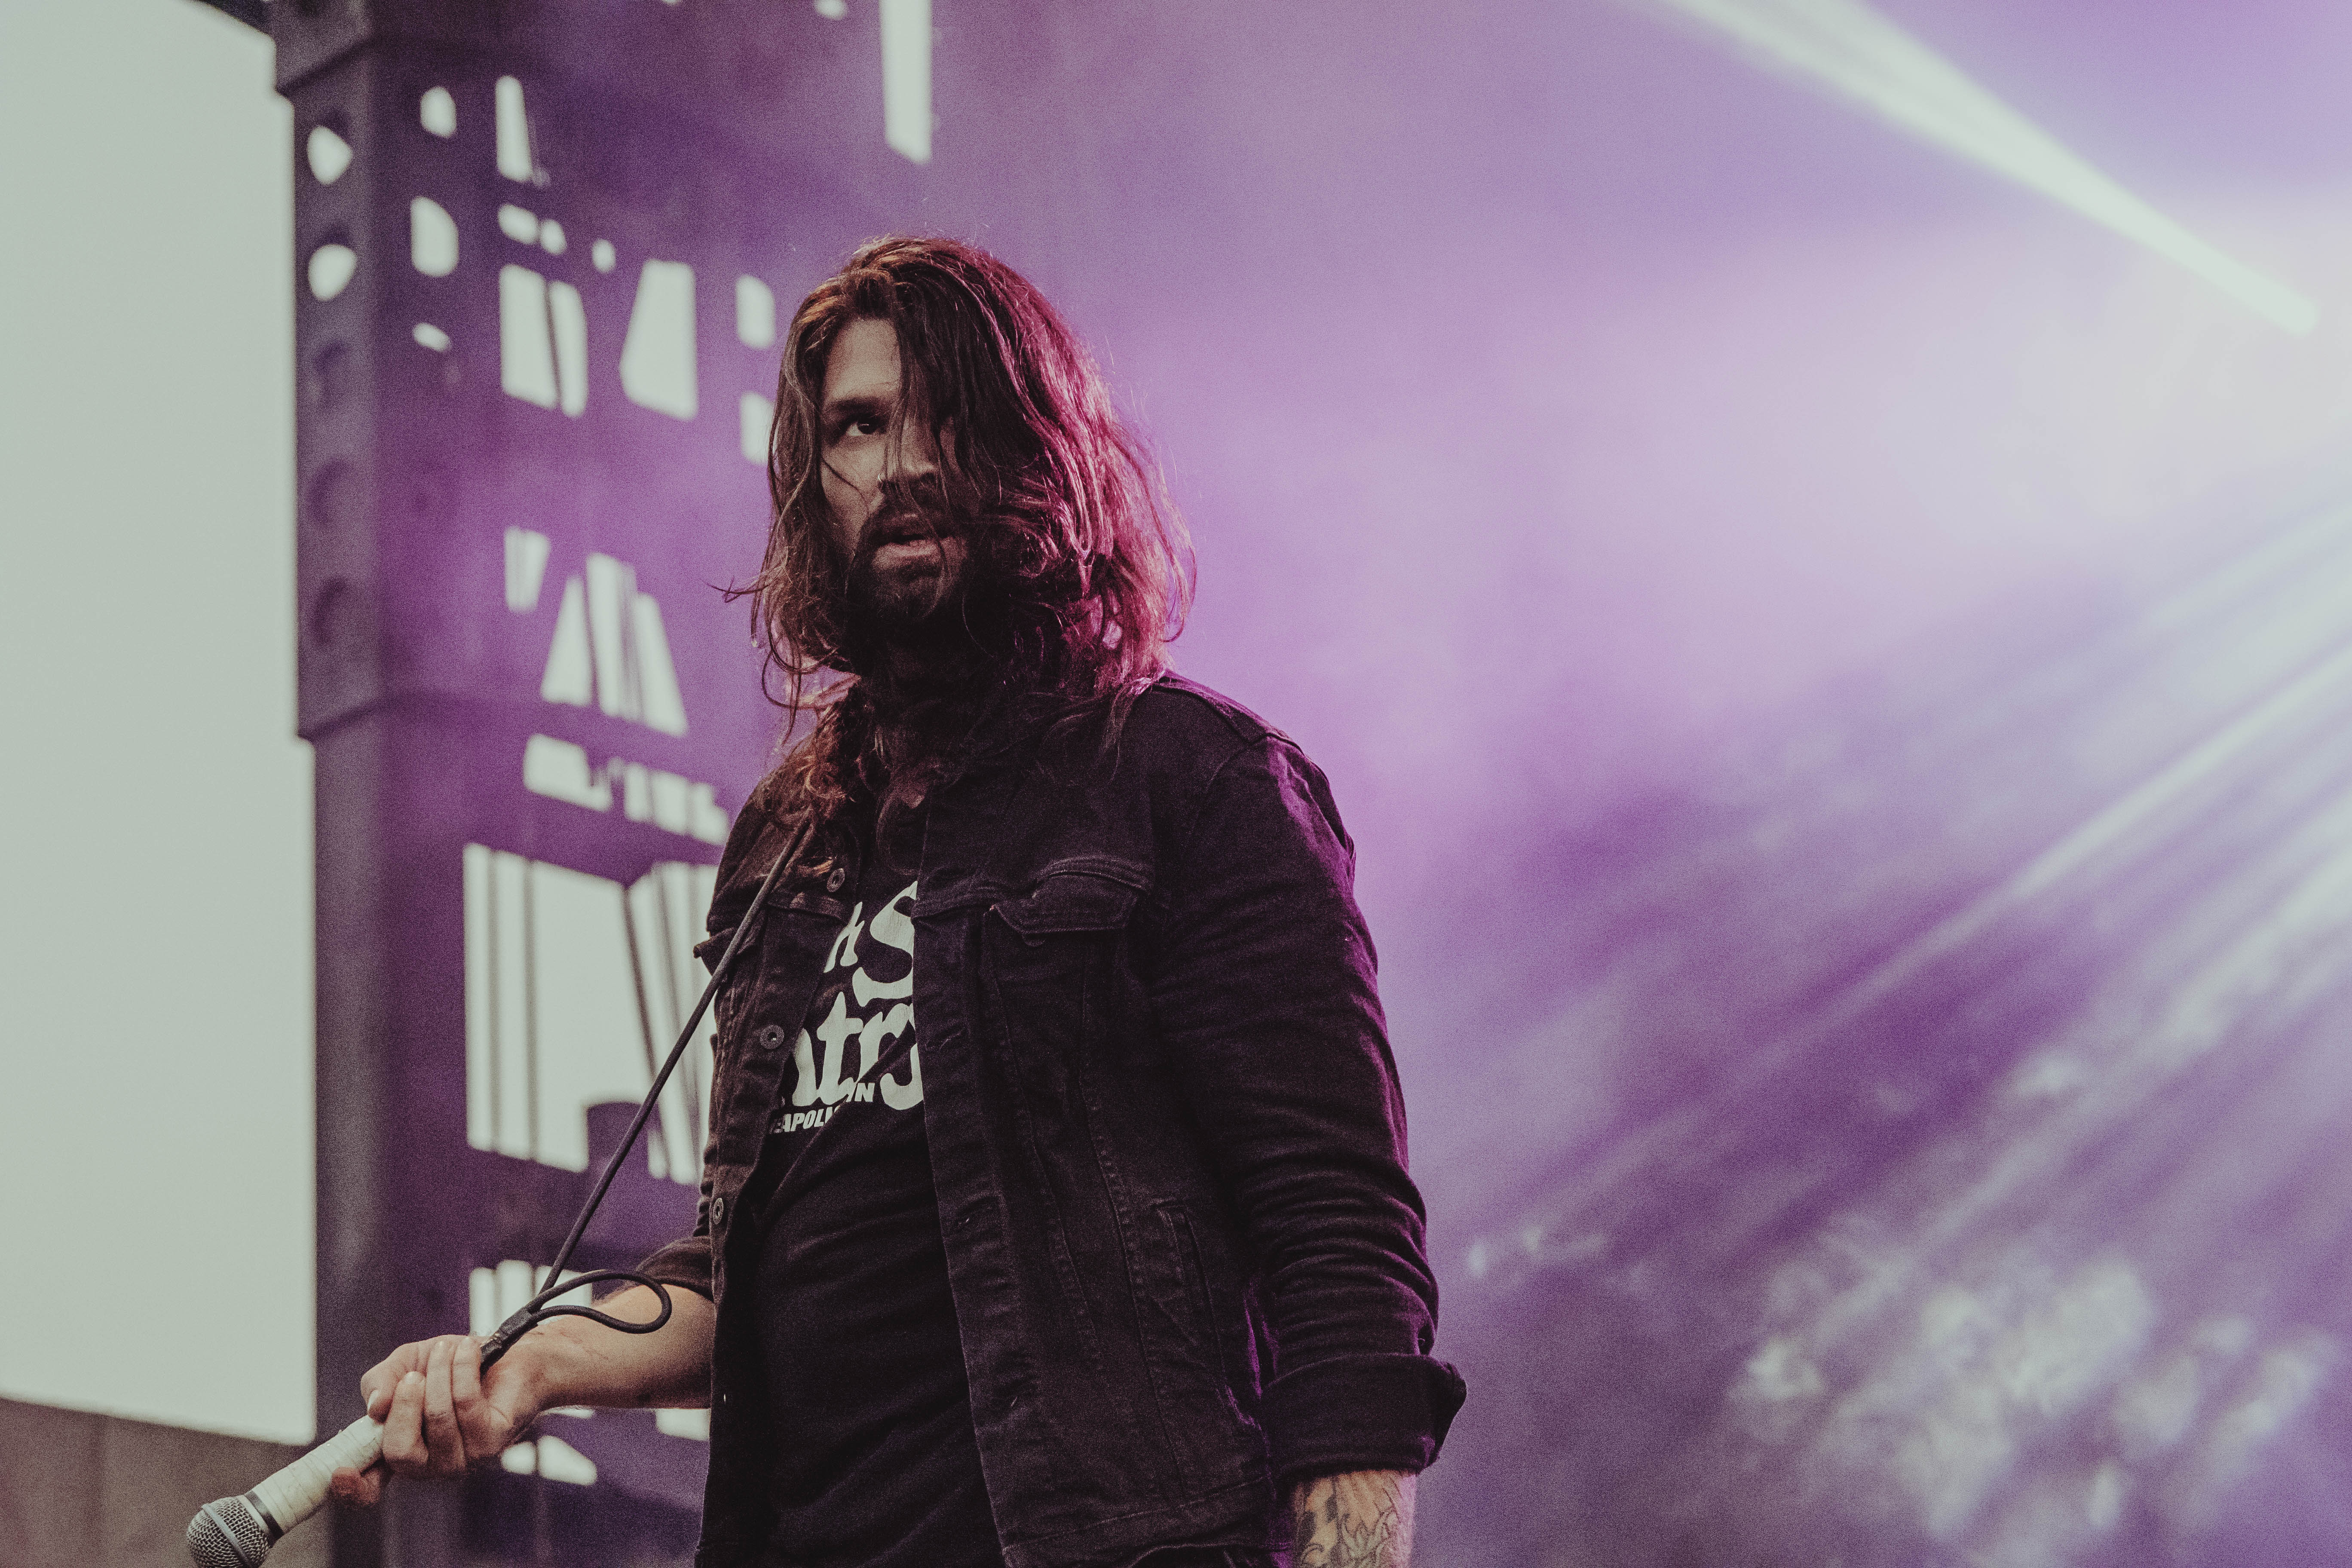 The Sights and Sounds of Riot Fest (Day 1)